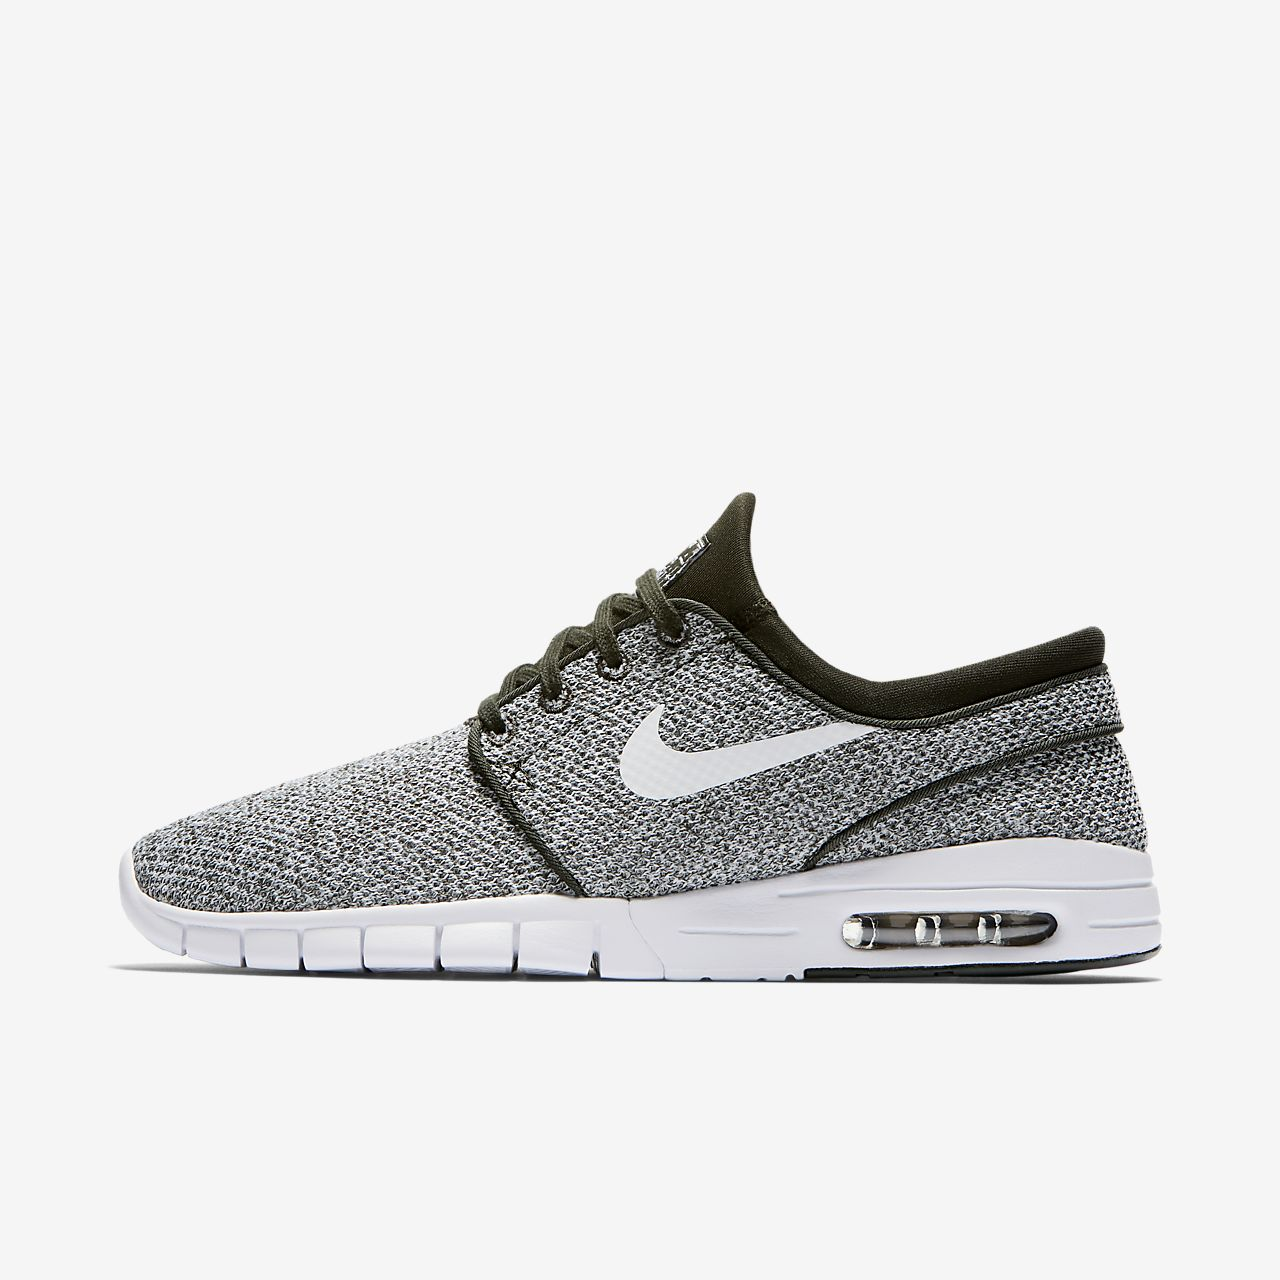 nike shoes janoski menusyst 866641